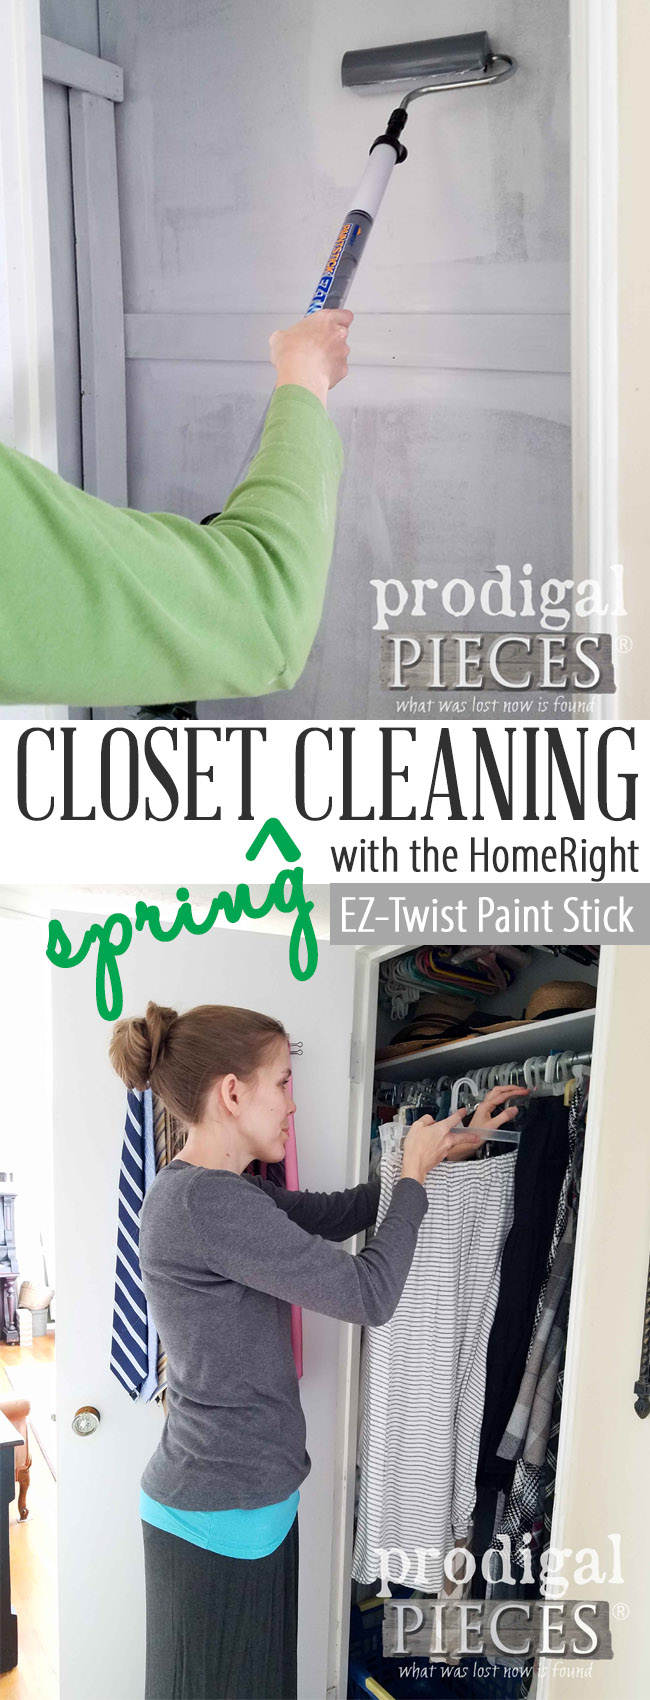 Don't wait another day! Get your closet spring cleaning done in a day with the HomeRigth EZ-Twist Paint Stick. It saves you time and money with less mess and more DIY time. See the video tutorial by Larissa of Prodigal Pieces at prodigalpieces.com